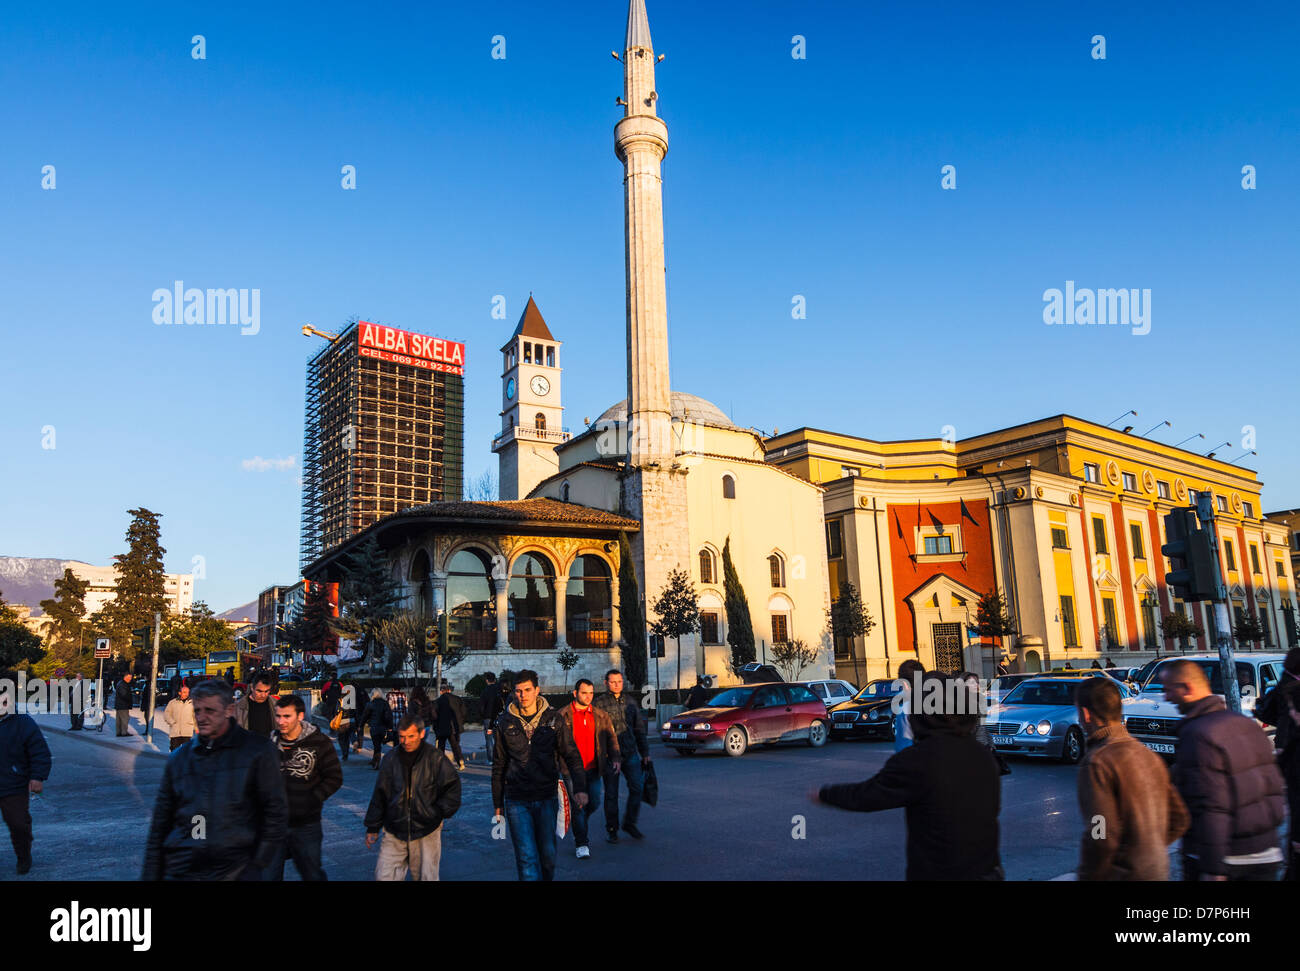 People crossing Skanderbeg Square with Ethem Bey mosque in background. Tirana, Albania - Stock Image